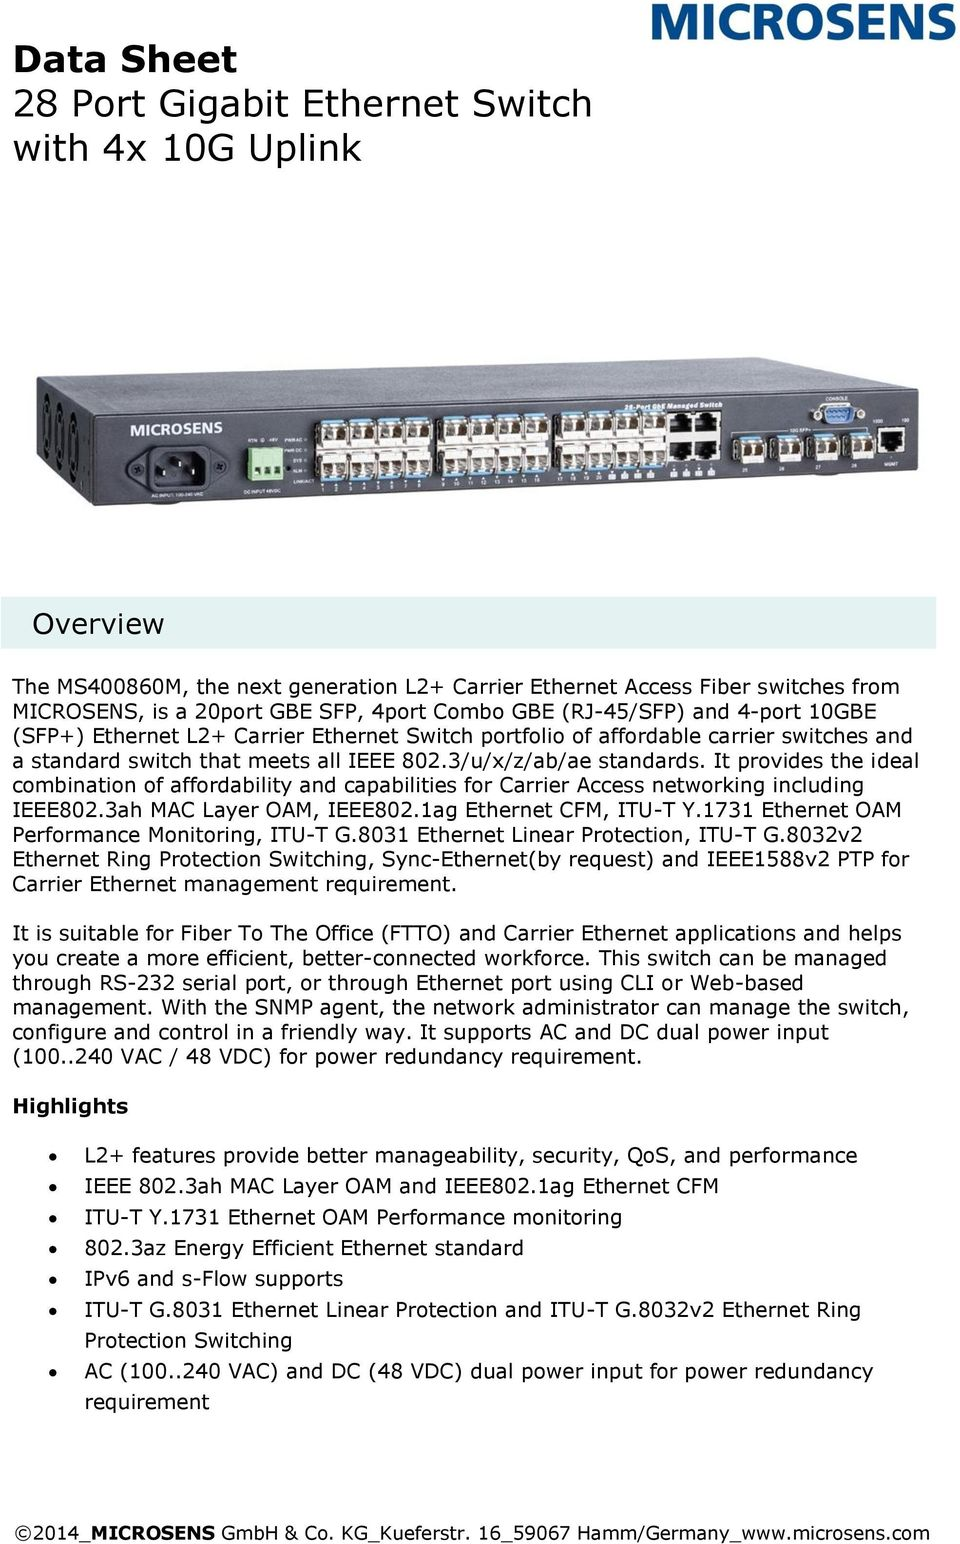 It provides the ideal combination of affordability and capabilities for Carrier Access networking including IEEE802.3ah MAC Layer OAM, IEEE802.1ag Ethernet CFM, ITU-T Y.